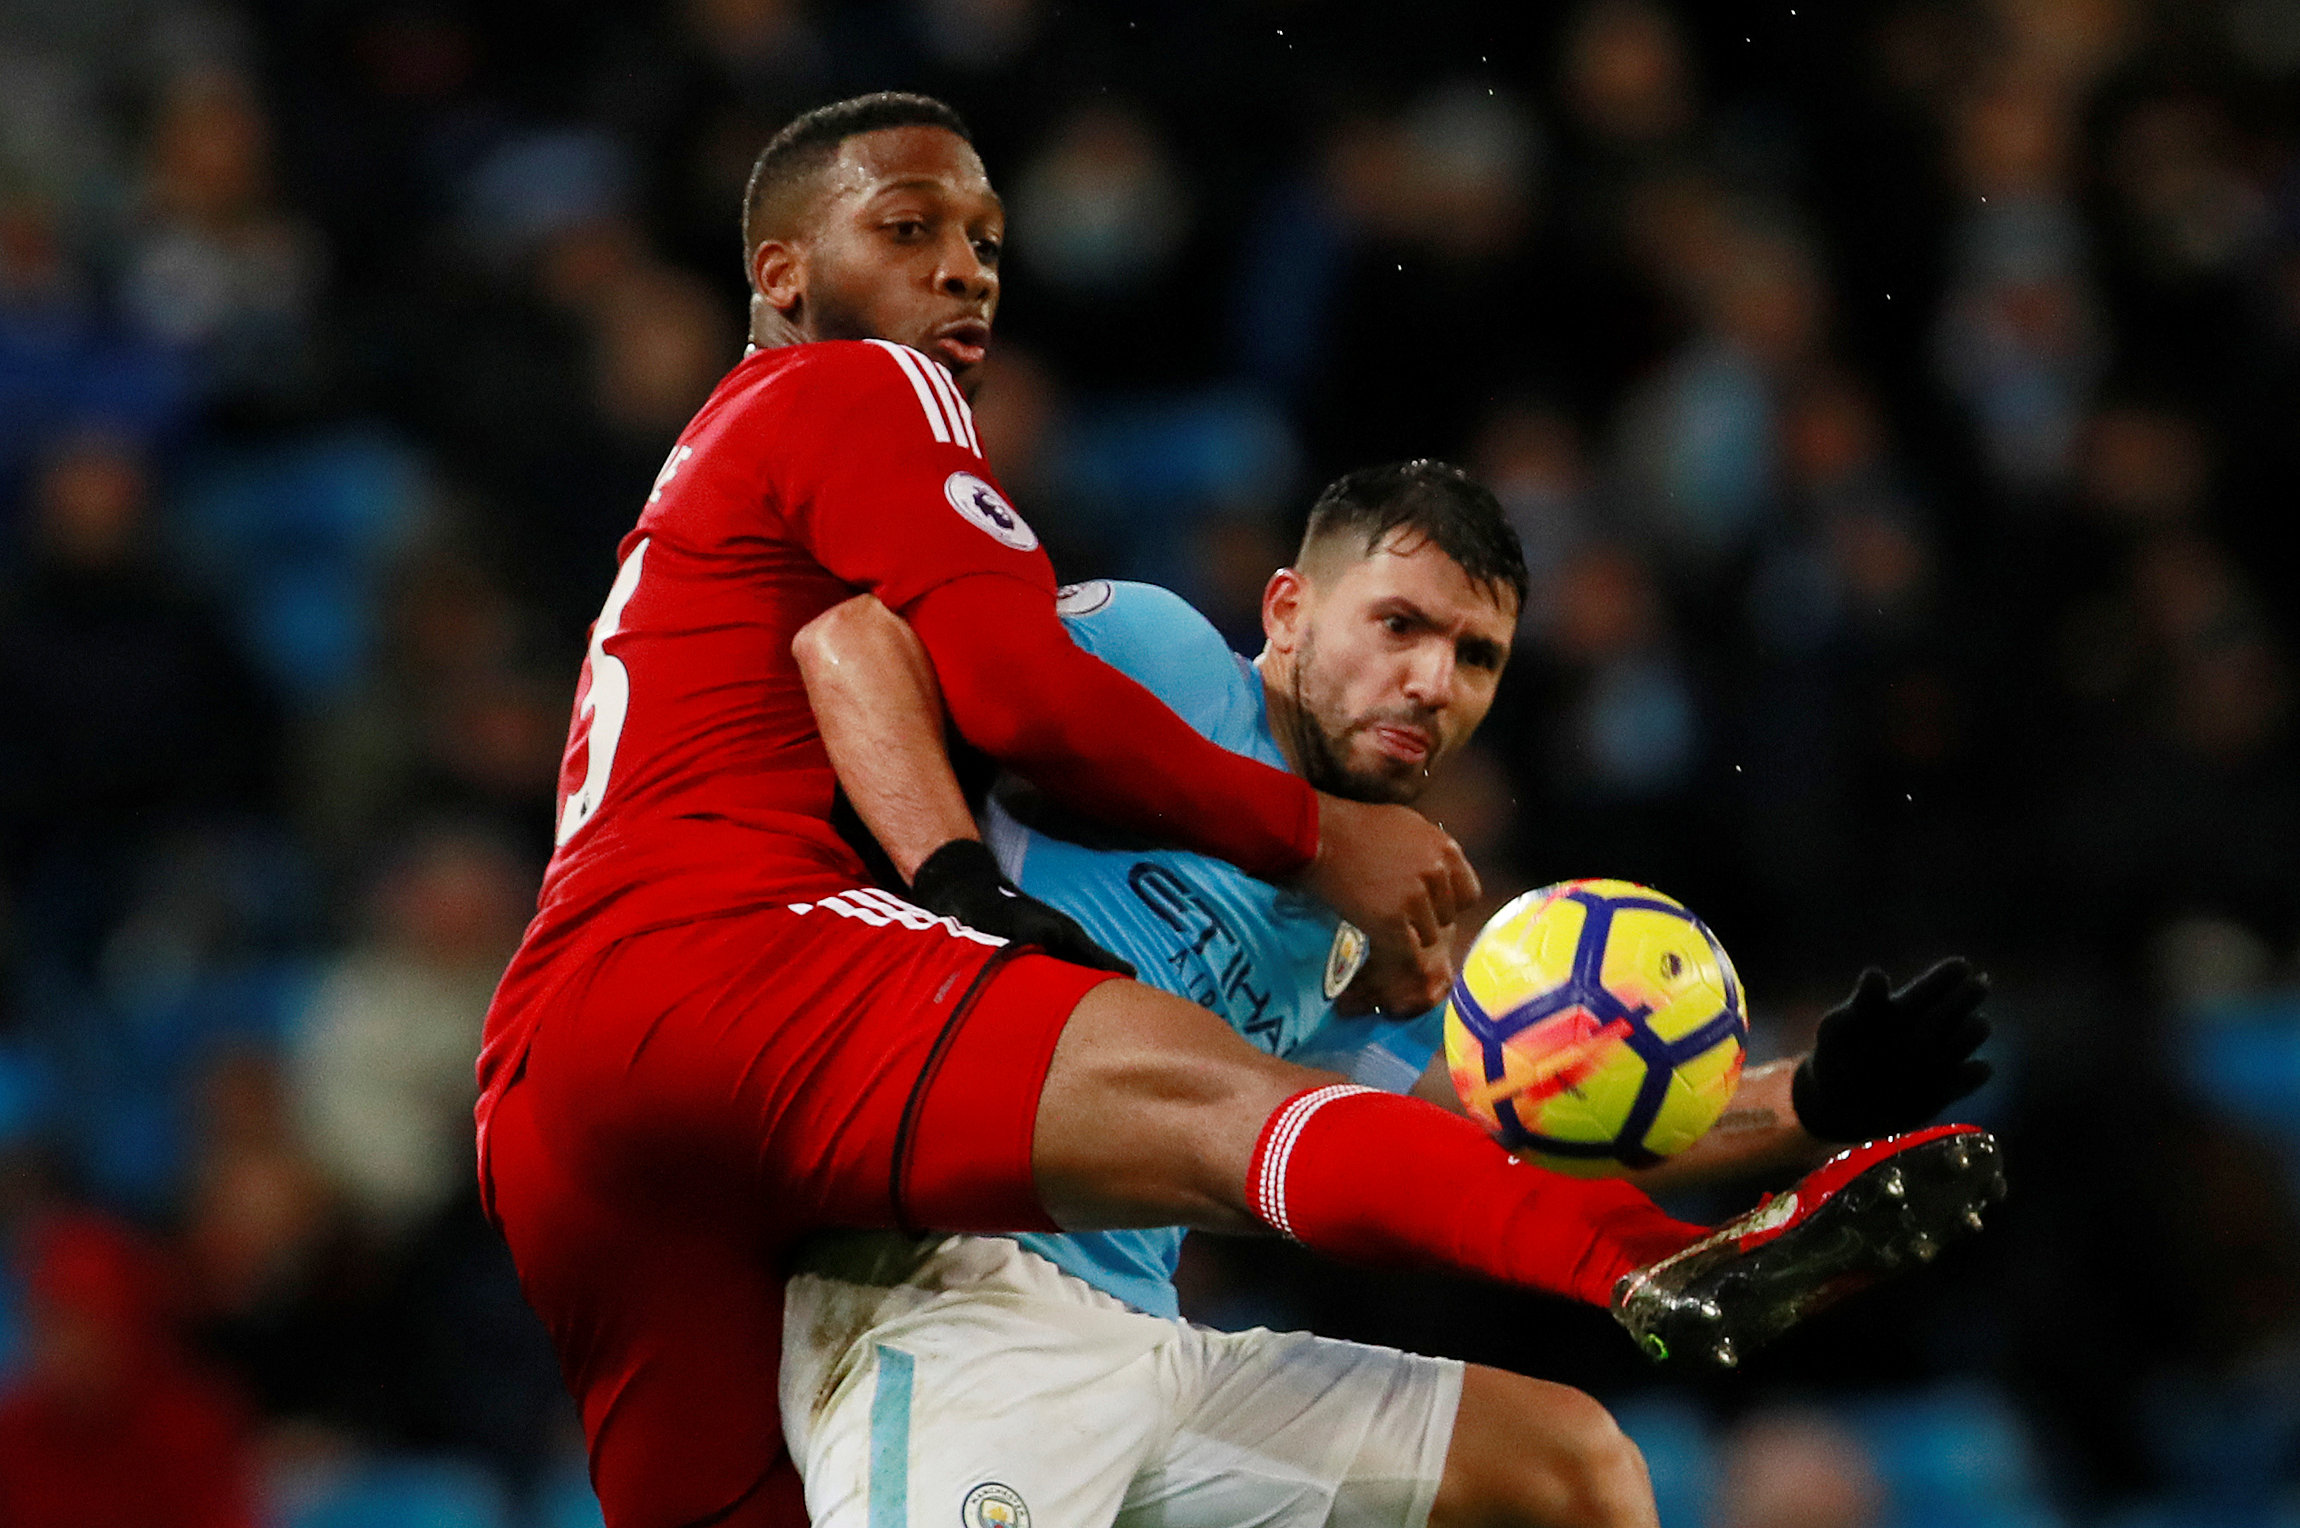 Molla Wague challenges Sergio Aguero during the Hornets' defeat at Manchester City. Picture: Action Images